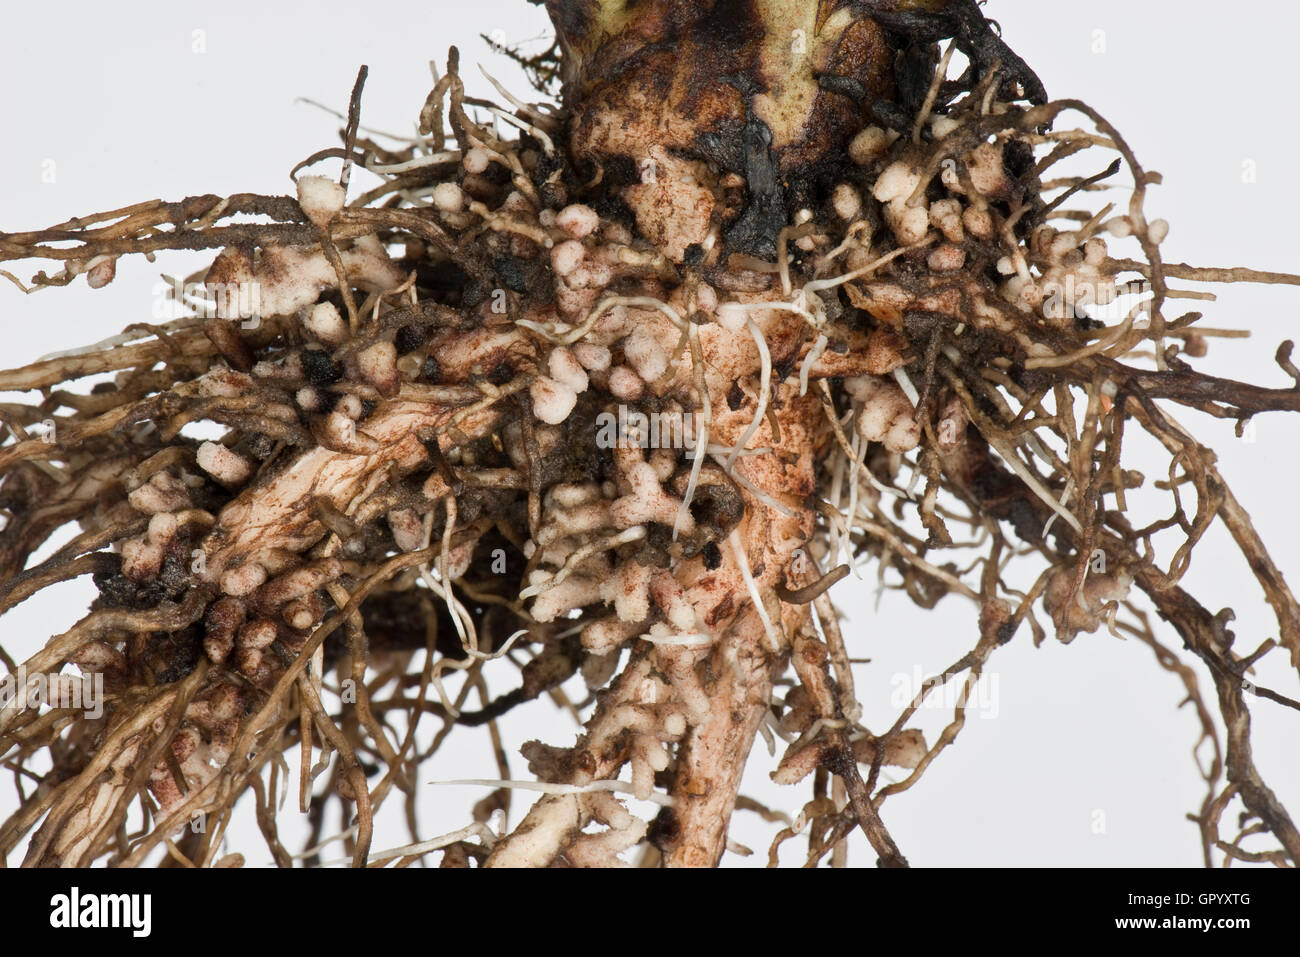 Root nodules for nitrogen fixation formed by Rhizobium bacteria on the roots of a broad bean plant - Stock Image